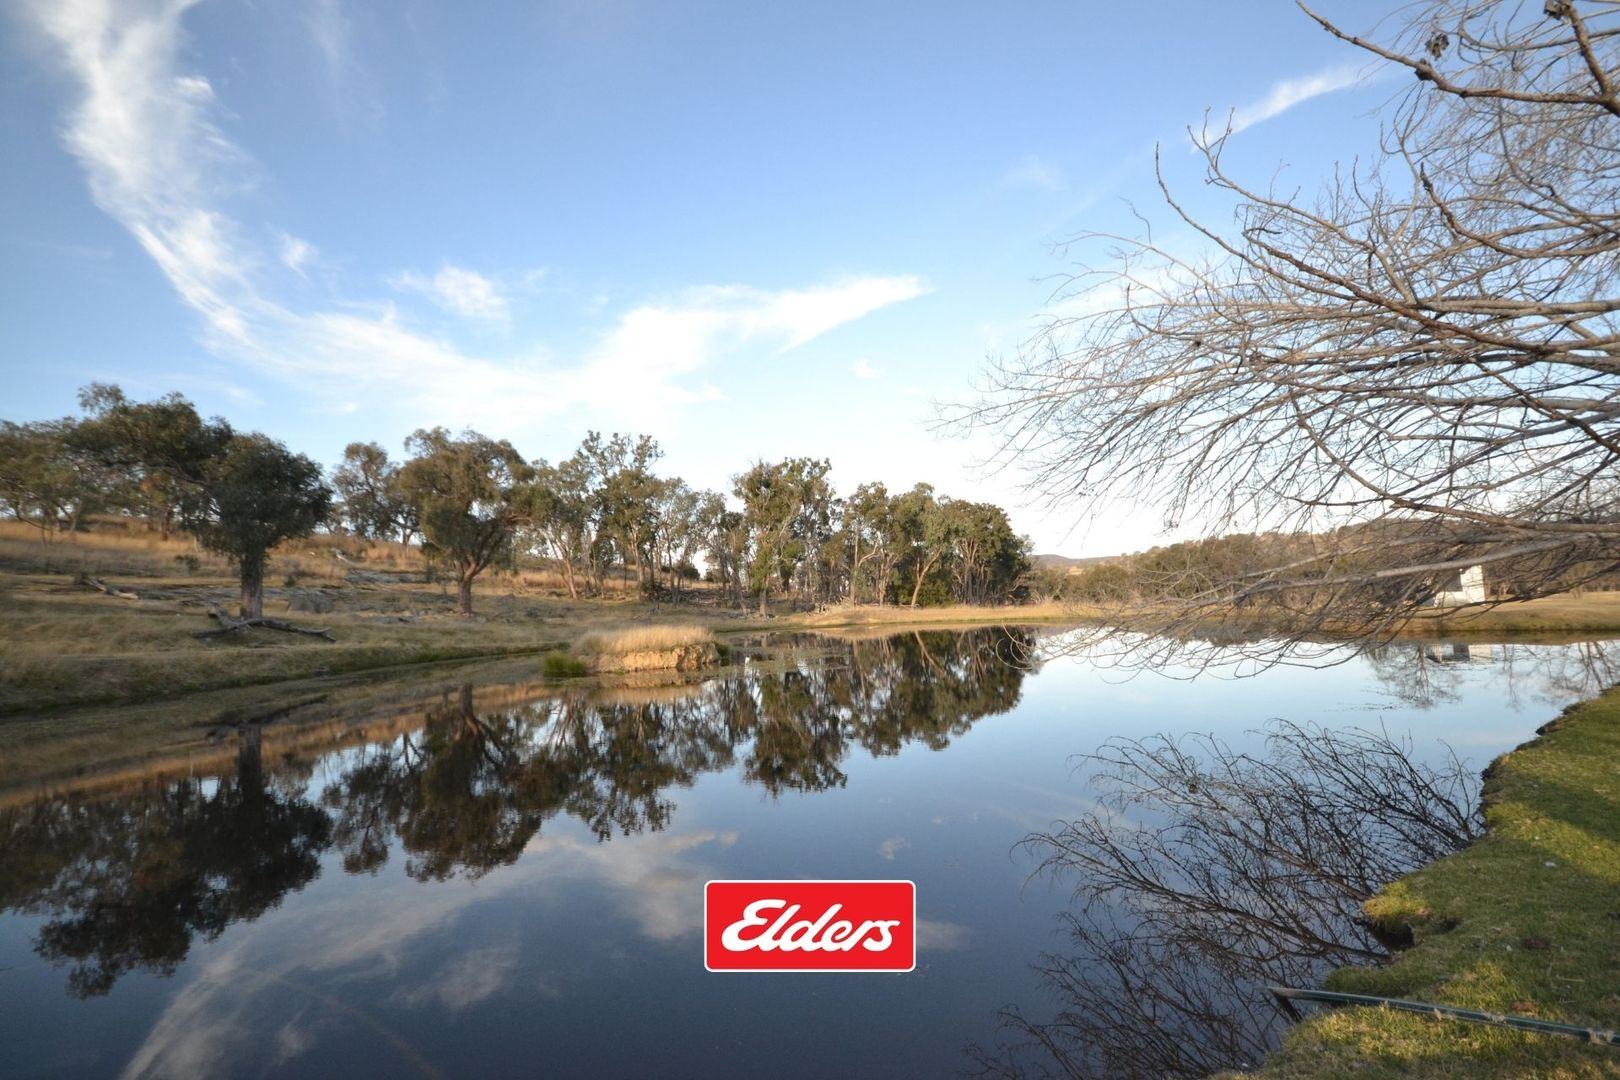 906 GROVE ROAD, Inverell NSW 2360, Image 0